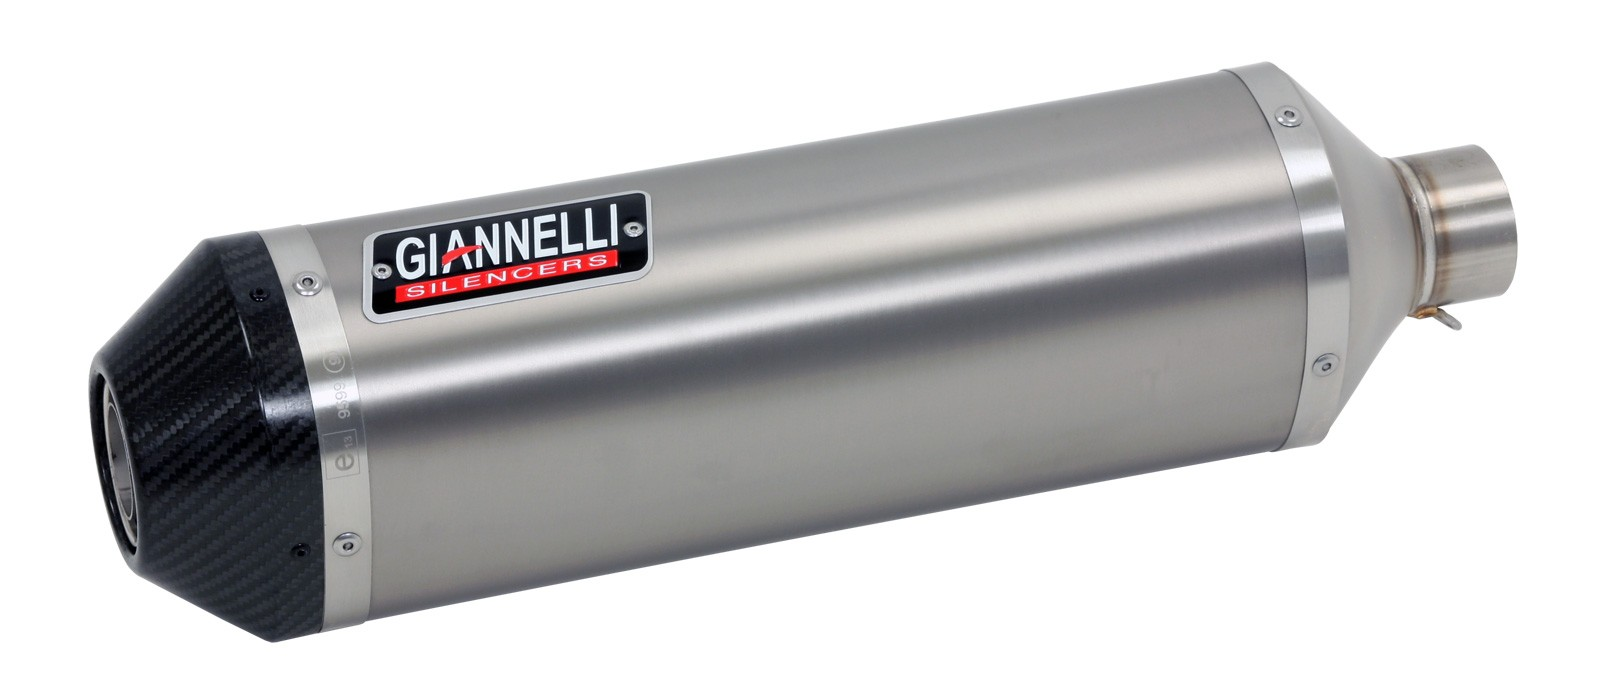 ESCAPES GIANNELLI YAMAHA - Sistema completo IPERSPORT Silenciador carbono Yamaha YZF-R 125 Giannelli 73815C6K -